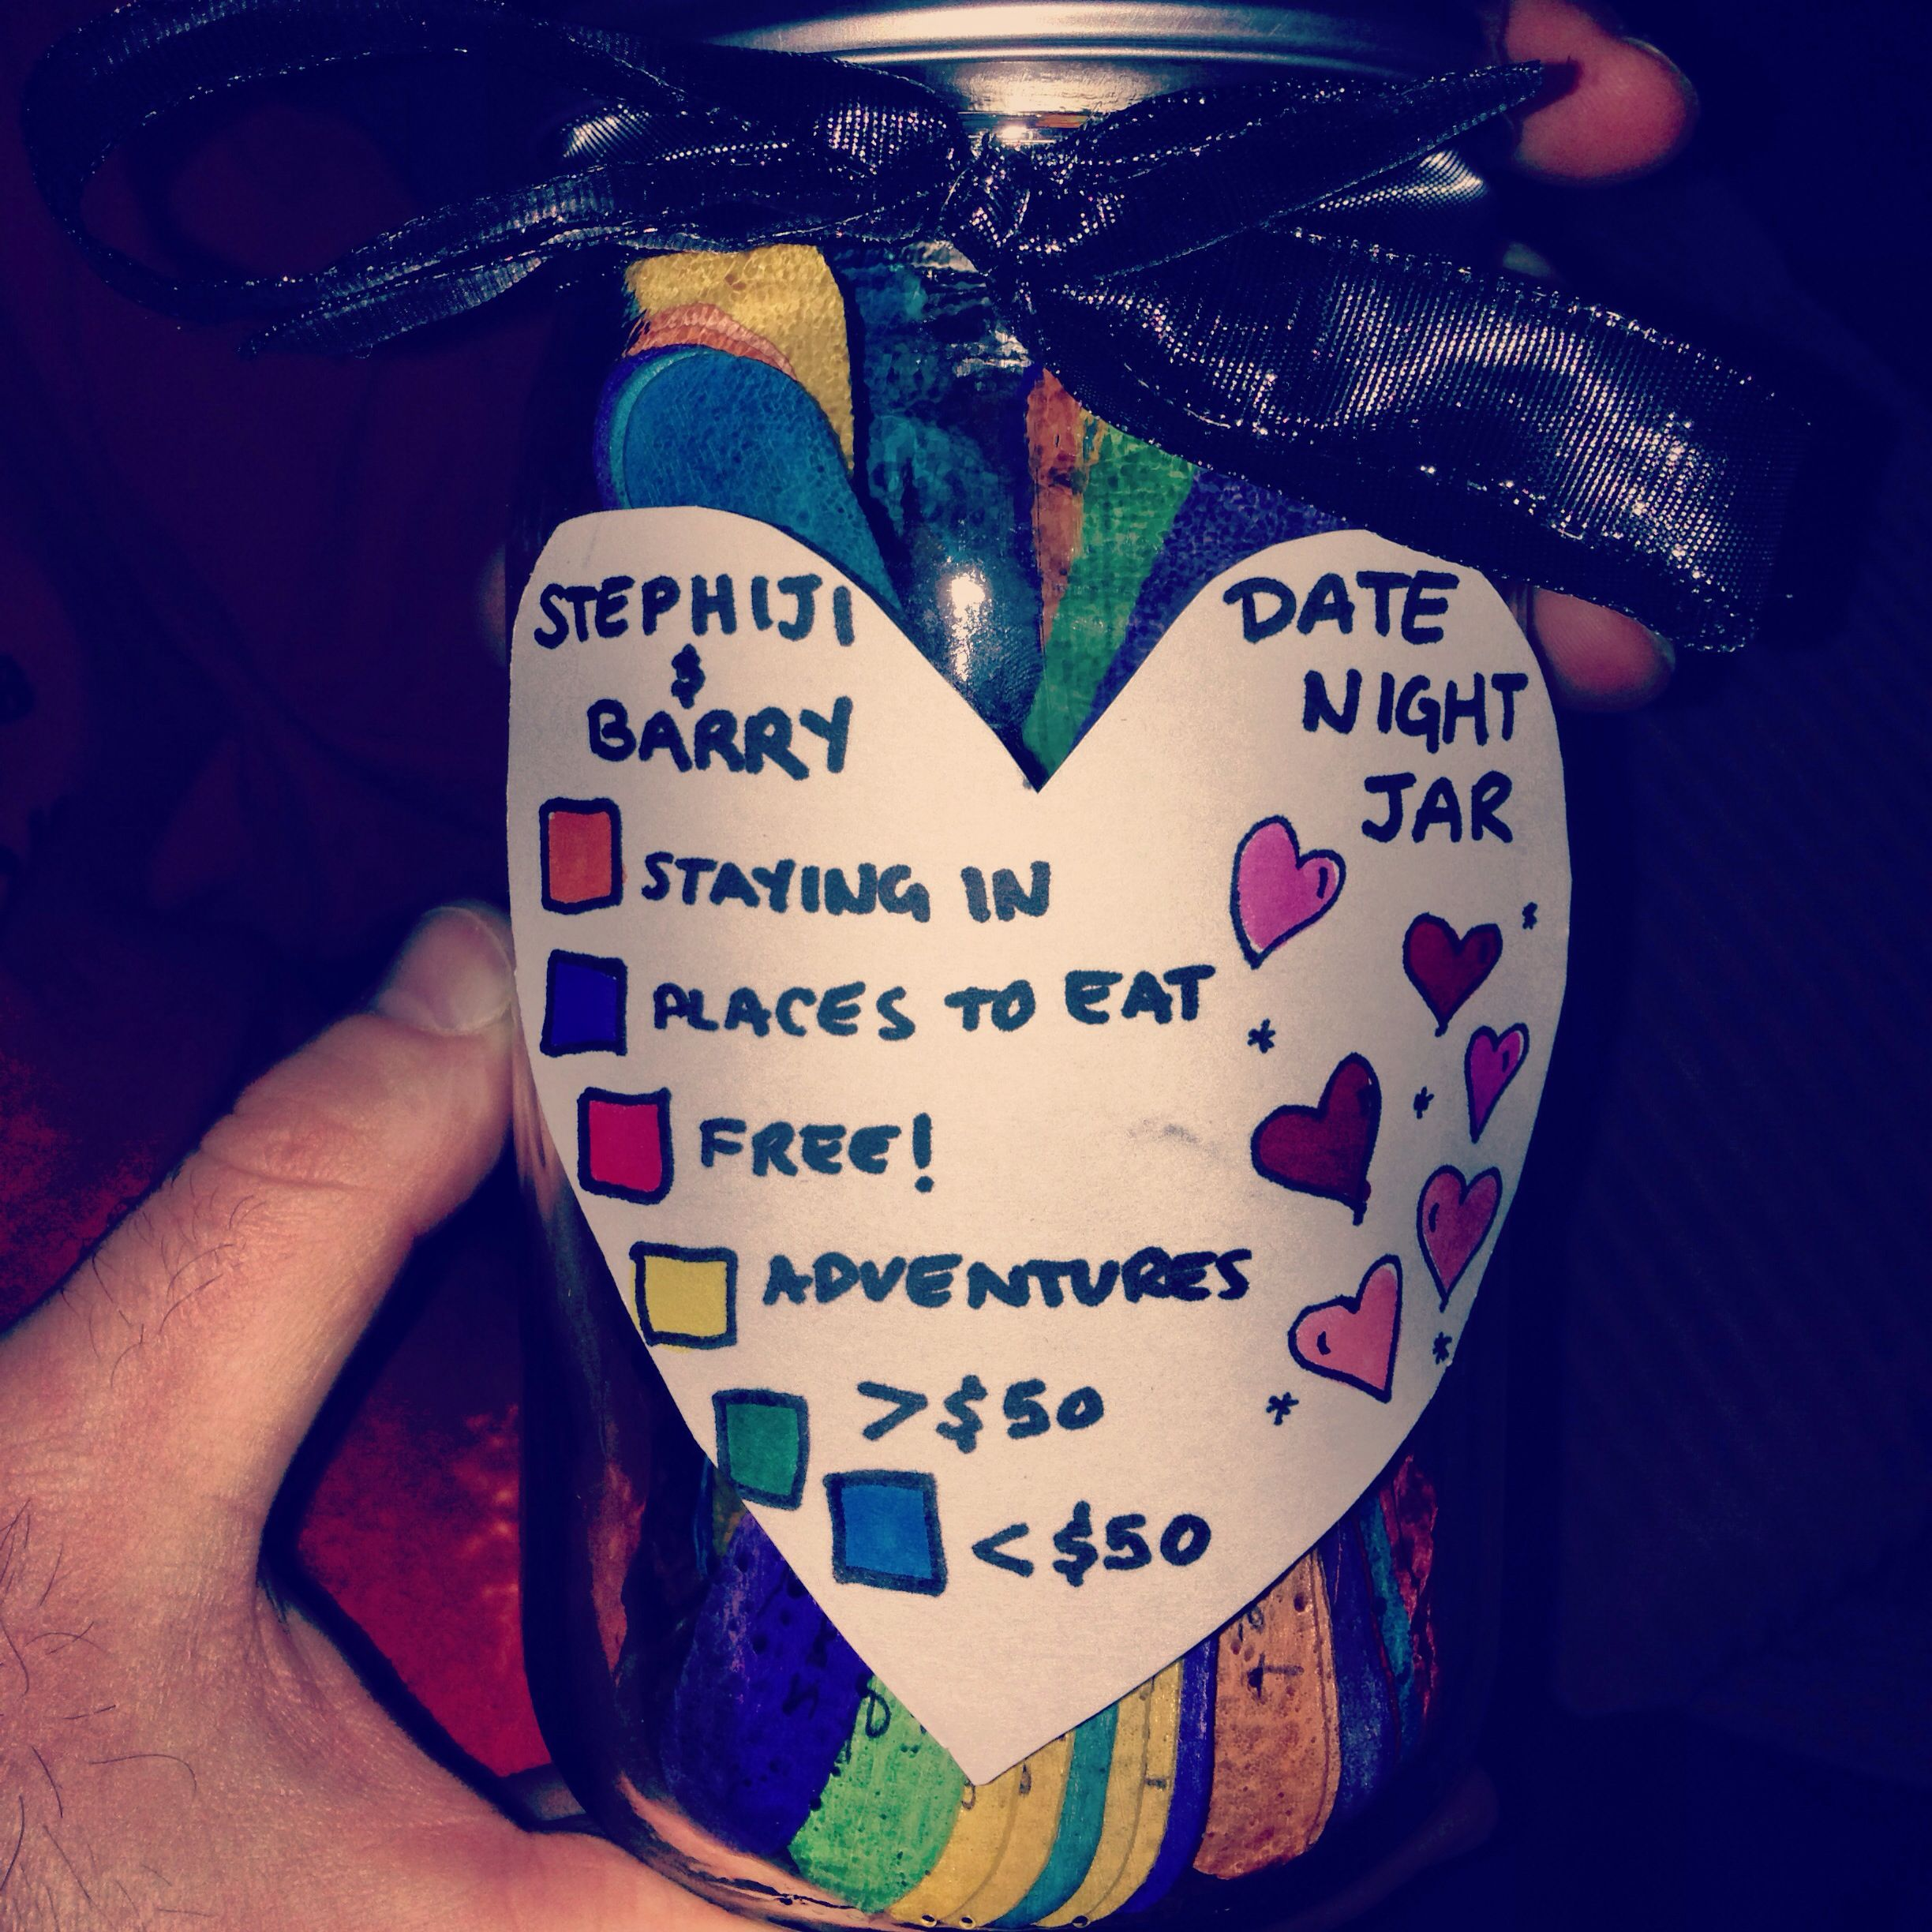 Pin By Zuly Alonso On Heart Strings Cute Date Ideas Date Night Jar Gifts For Your Boyfriend